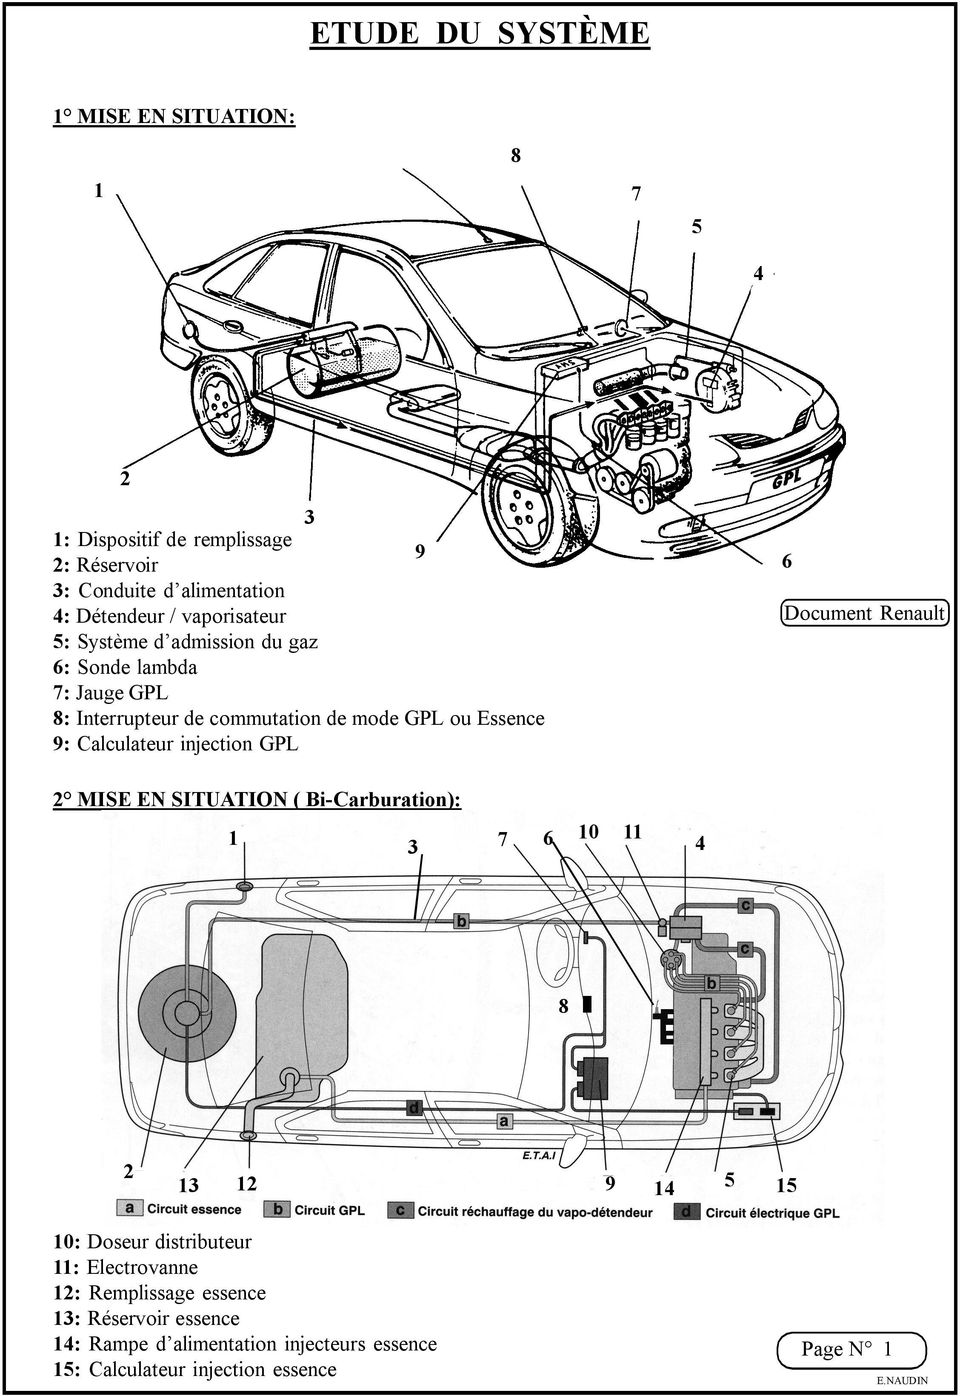 Calculateur injection GPL 6 Document Renault 2 MISE EN SITUATION ( Bi-Carburation): 1 3 7 6 10 11 4 8 2 13 12 9 14 5 15 10: Doseur